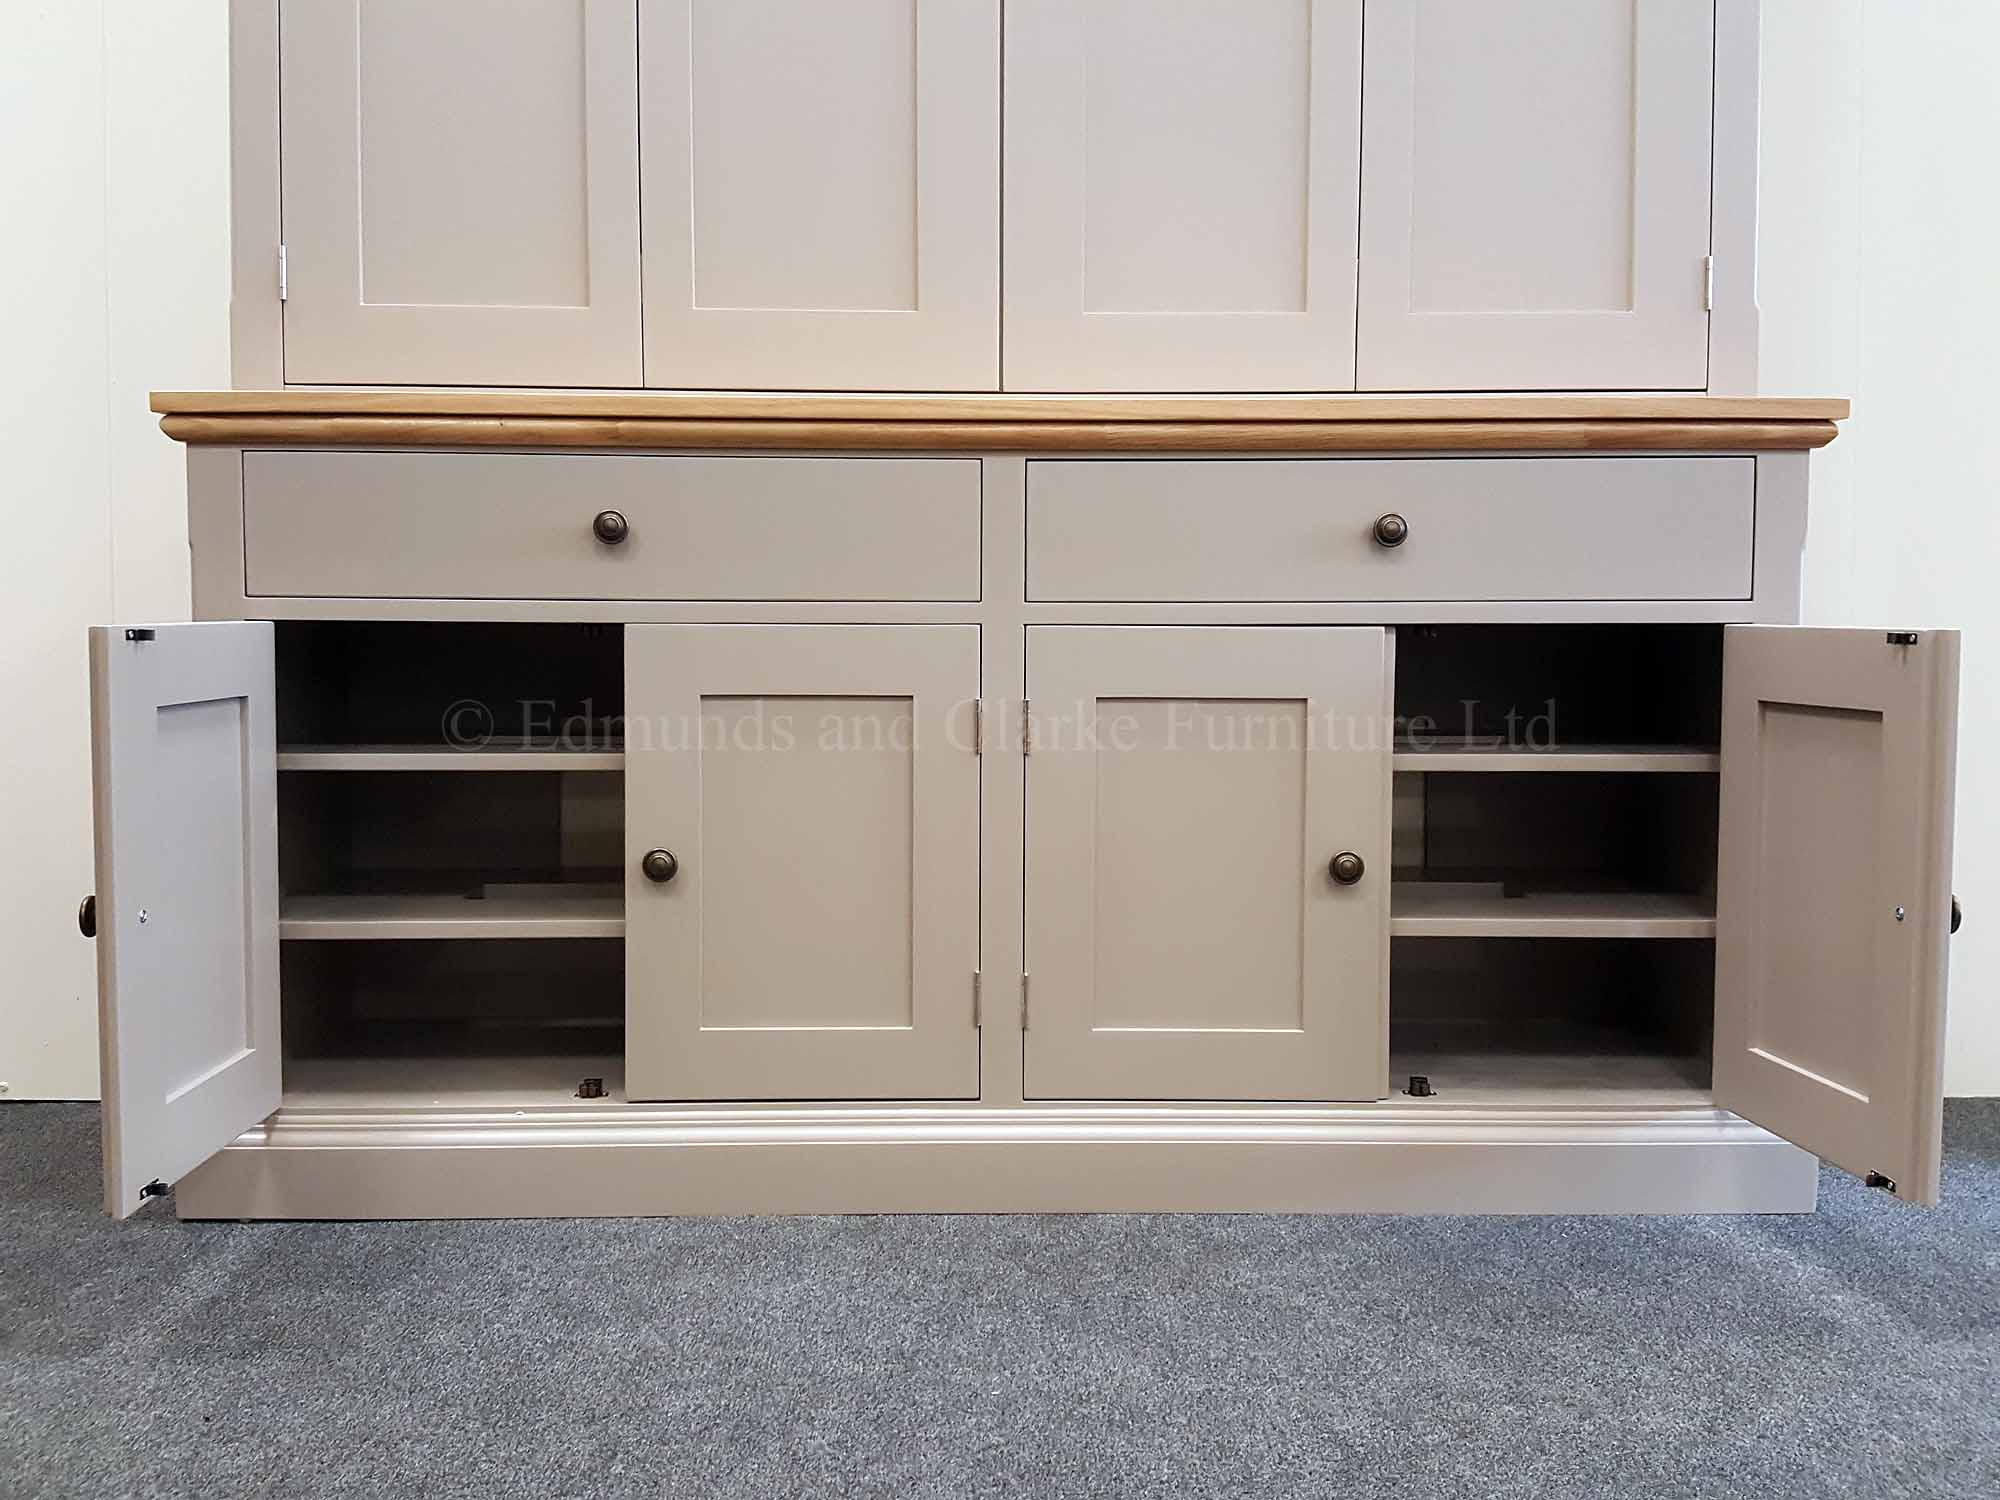 Edmunds large wide plasma tv cupboard, available in a range of paint colours